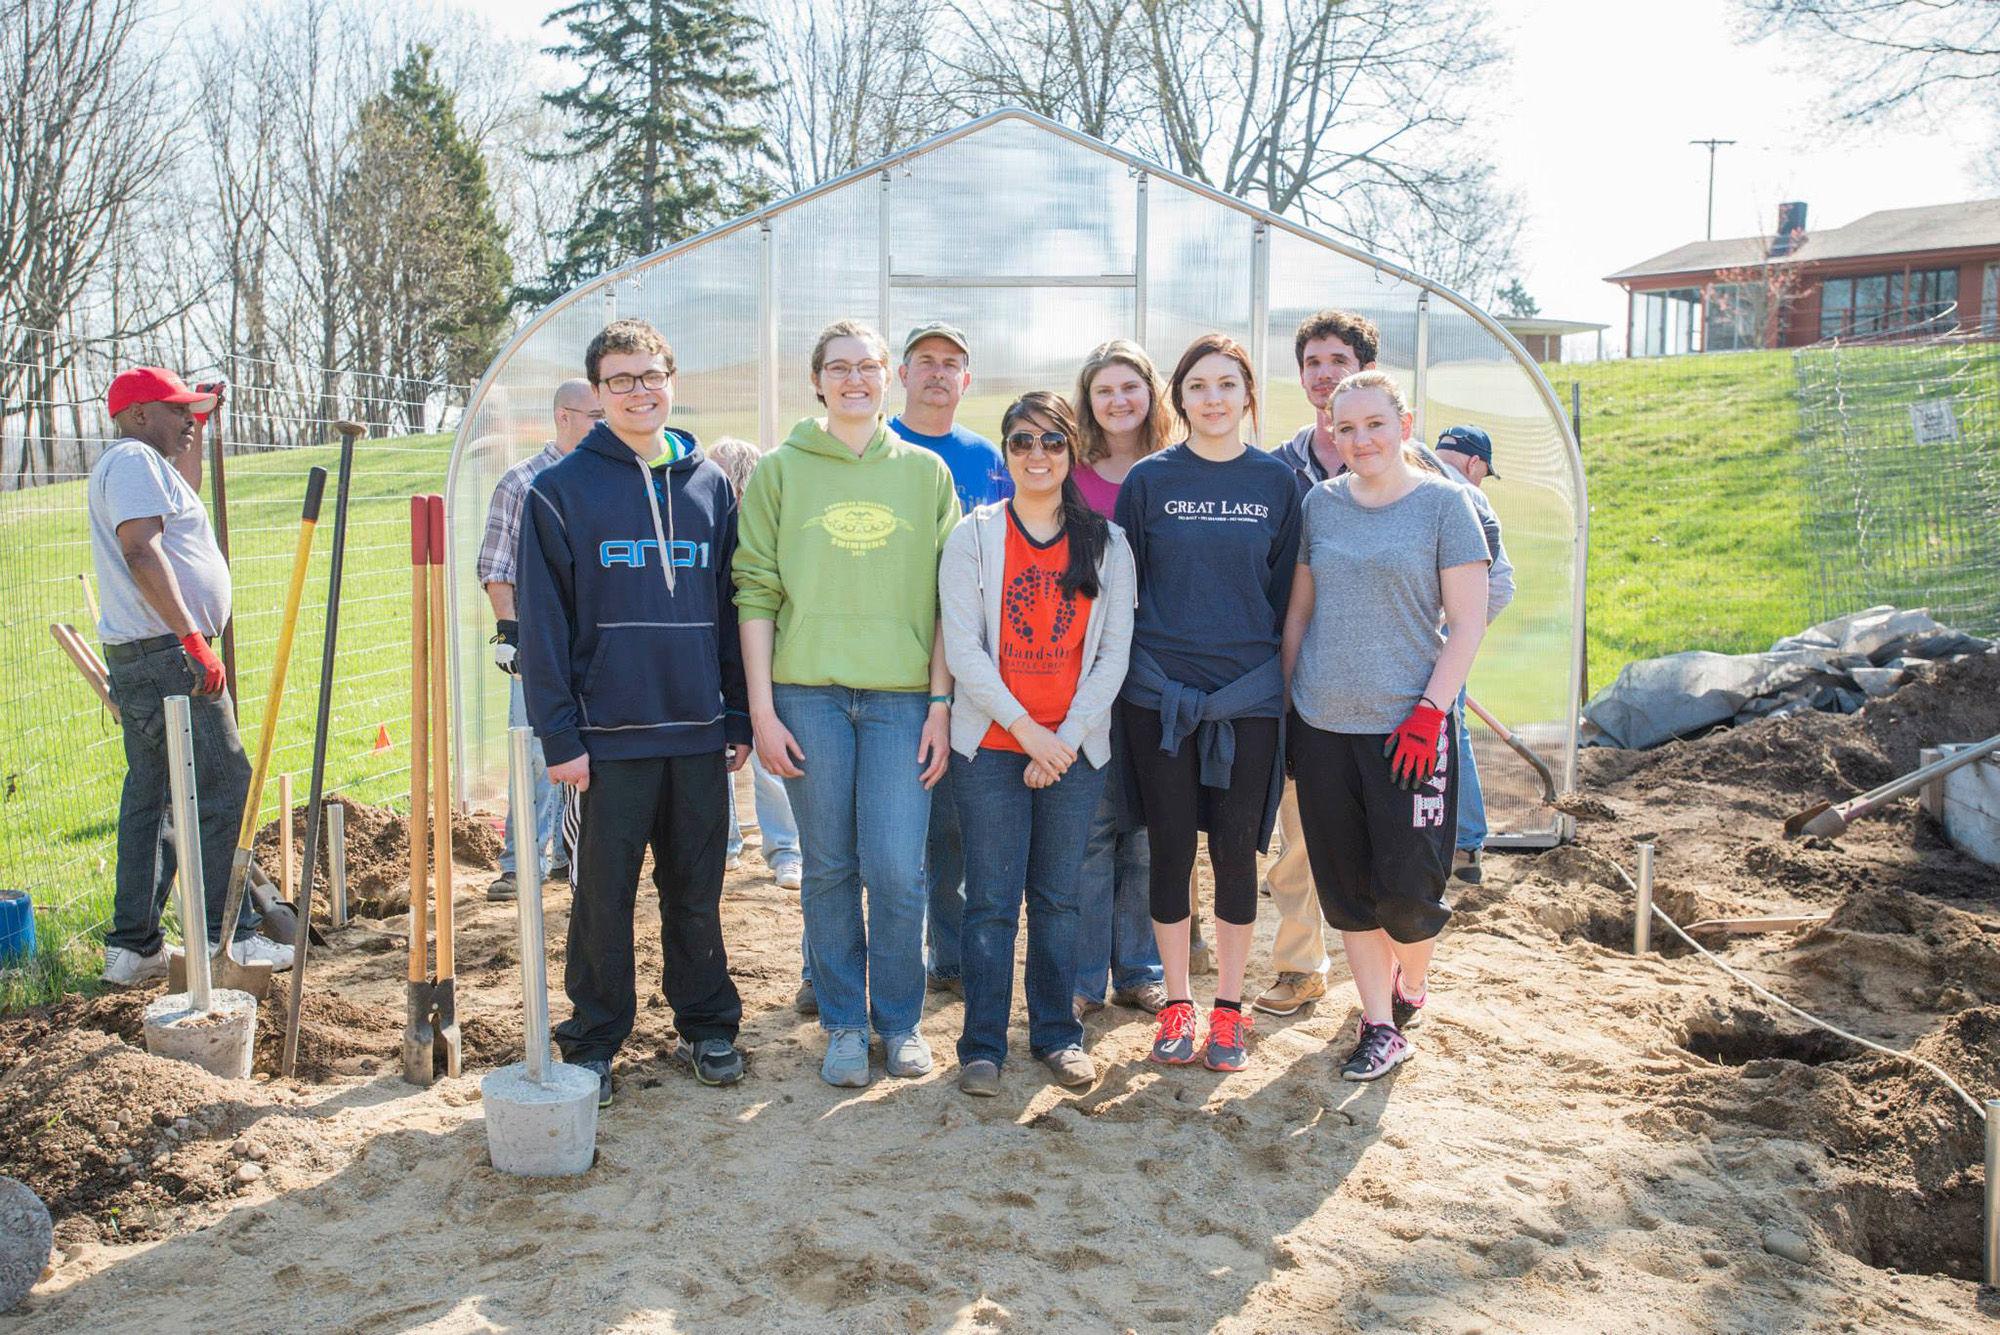 KCC students and employees pose for a group photo while working in the college's community garden on campus